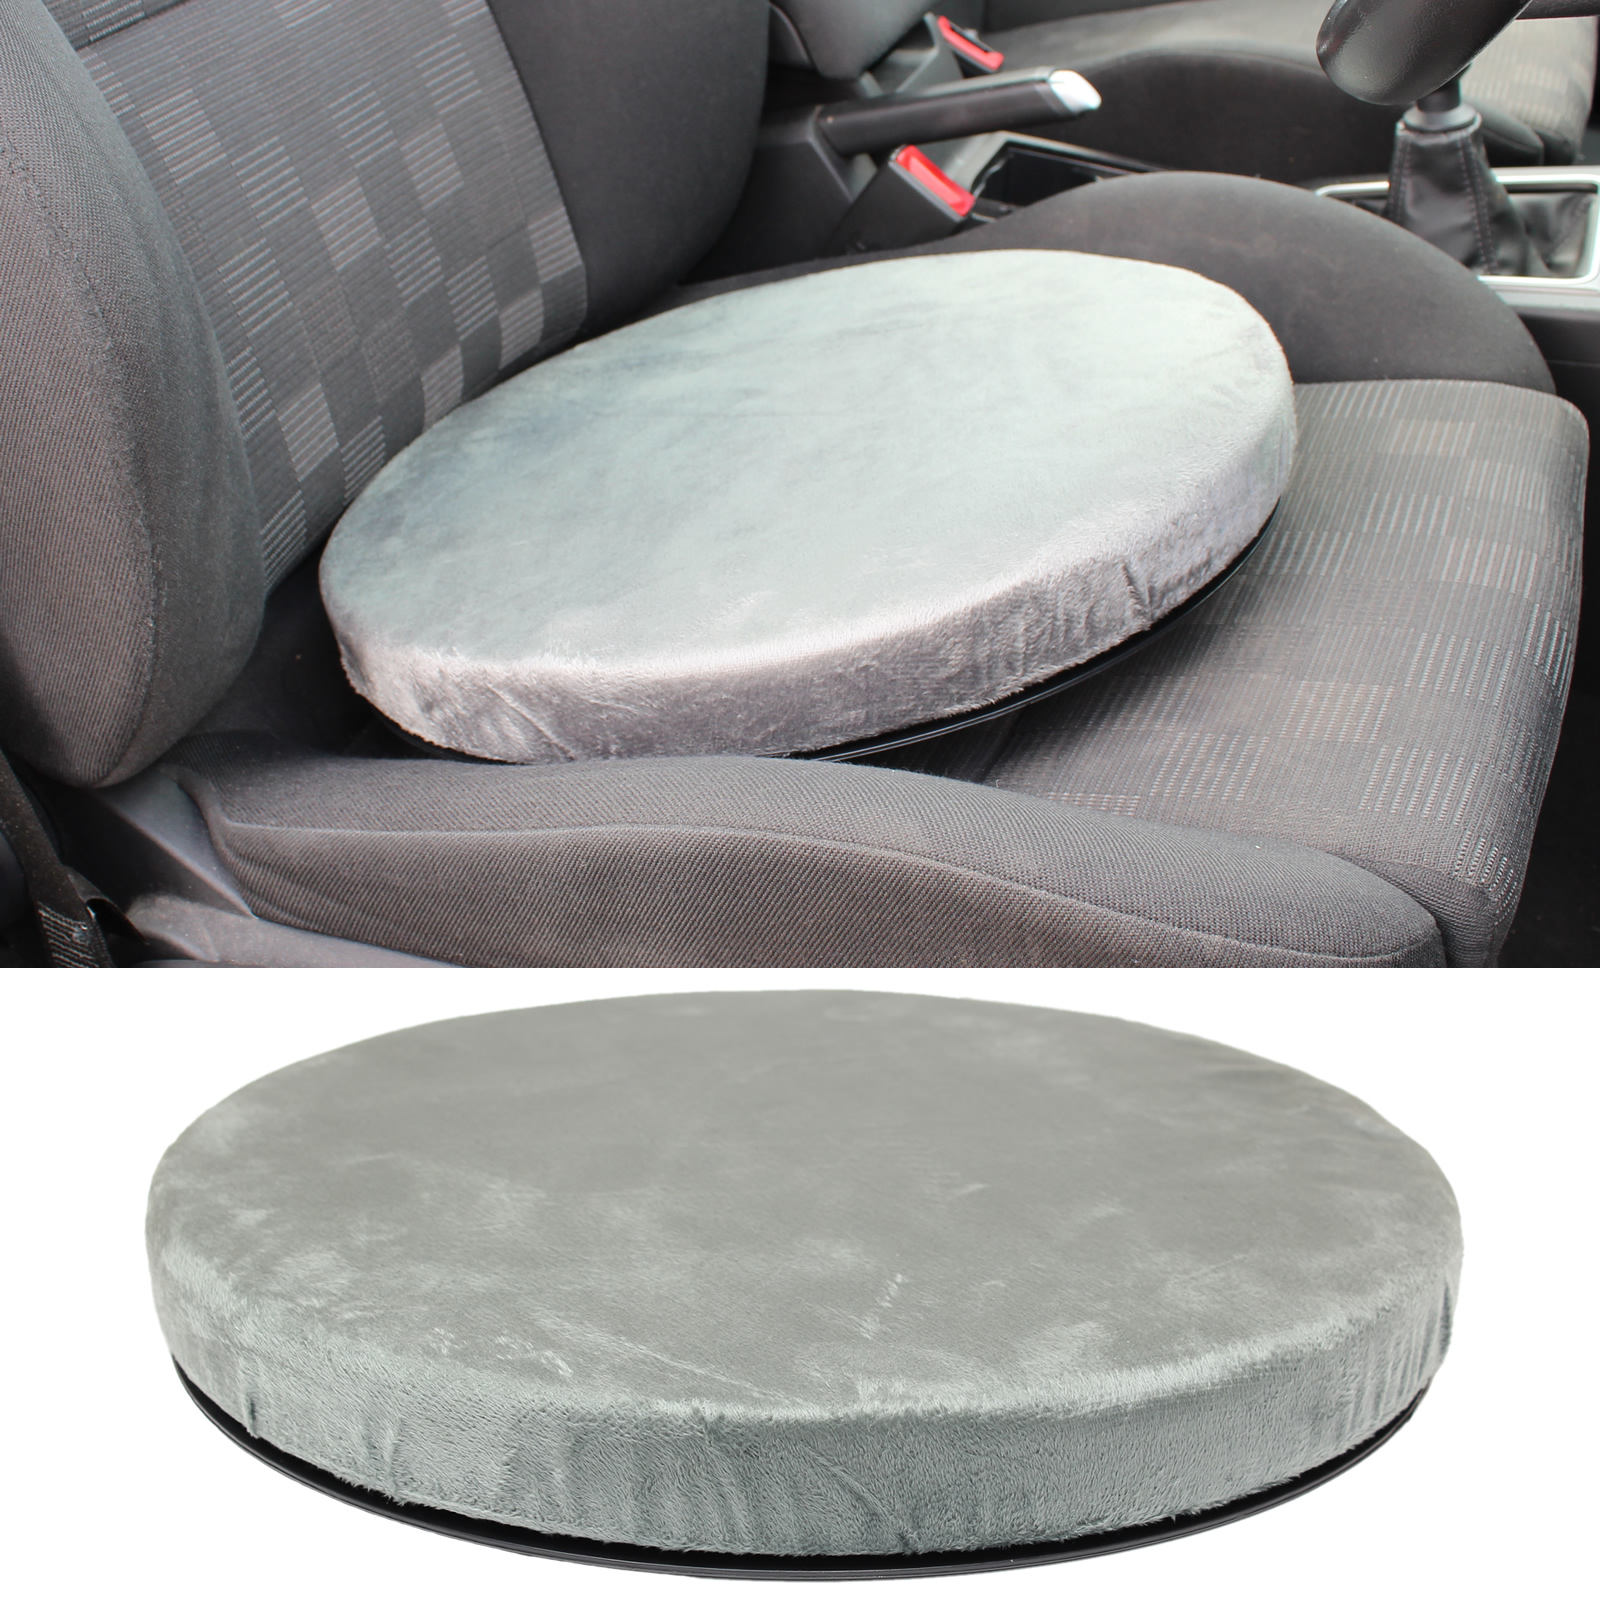 ROTATING SWIVEL SEAT CUSHION DINING CHAIR/CAR SPINNING MOBILITY AID ...